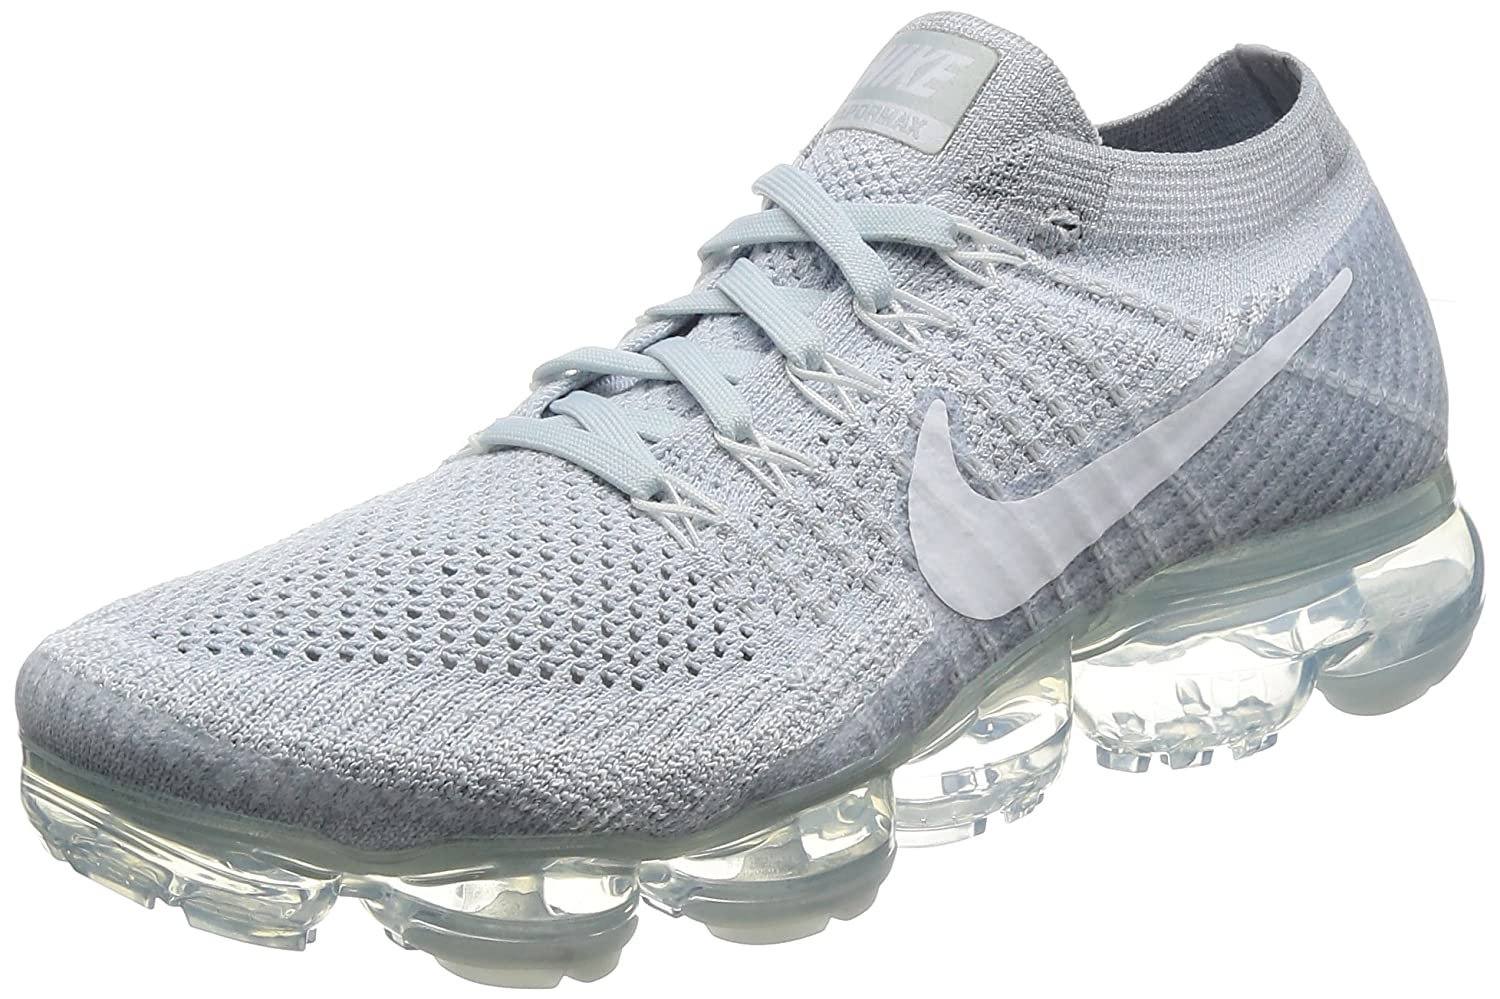 b5432cc94b Amazon.com | Men's Nike Air Vapormax Flyknit Running Shoe | Fashion Sneakers